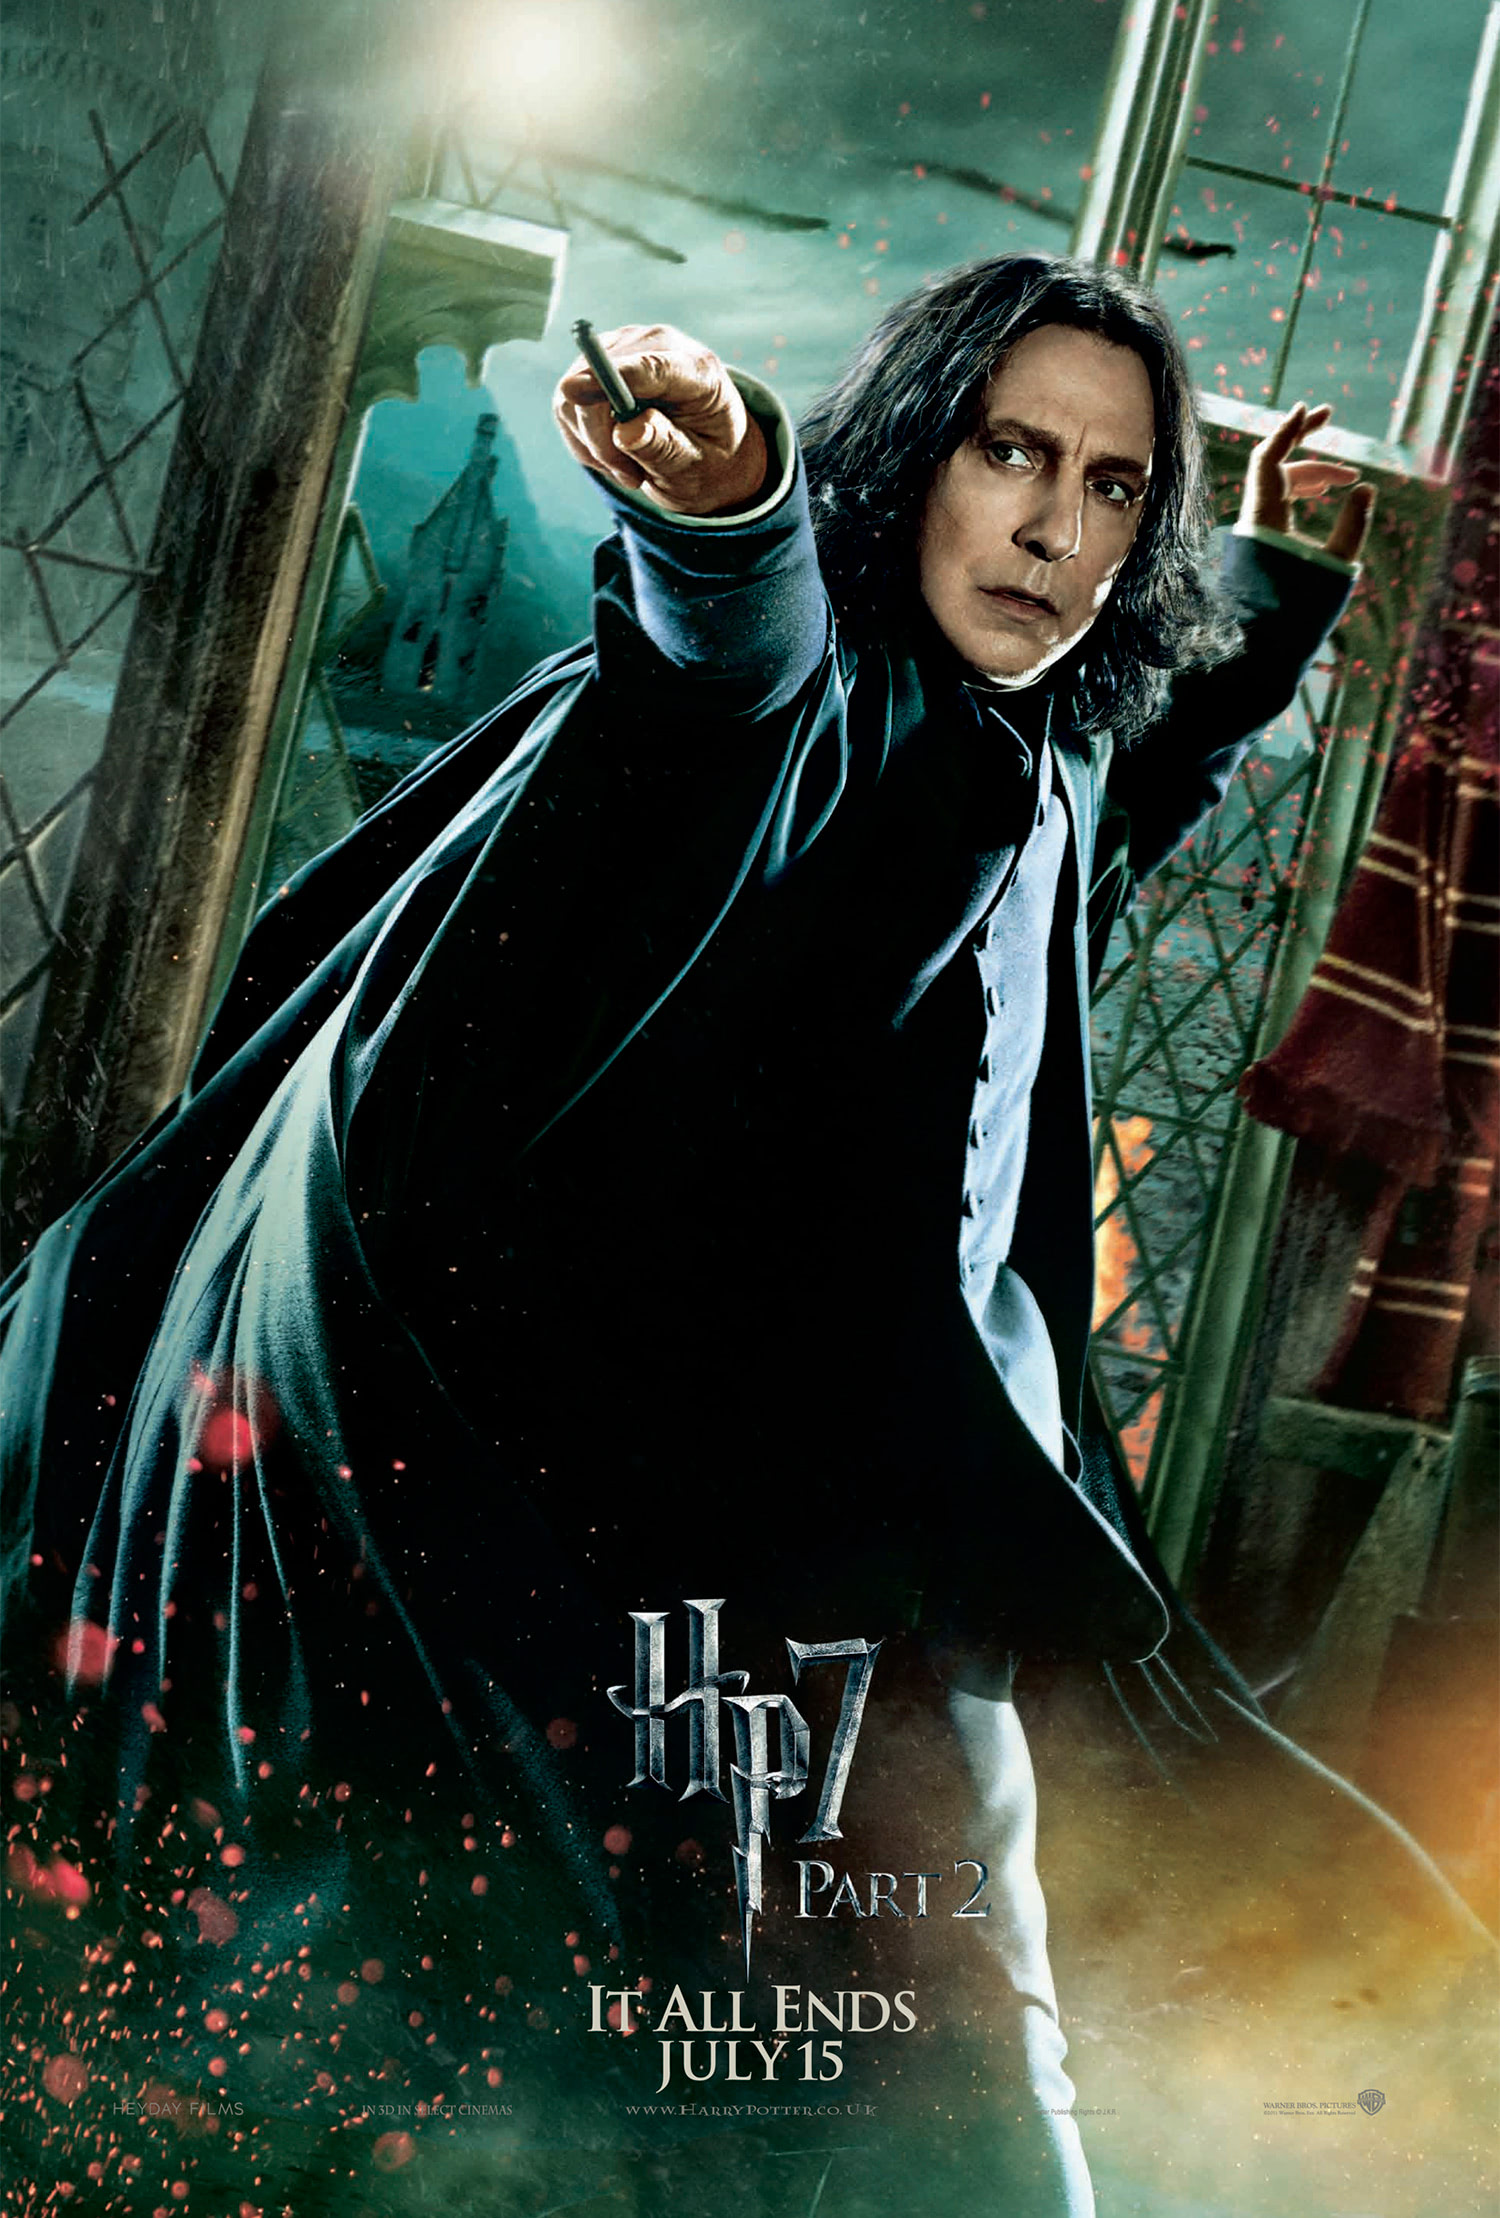 'Deathly Hallows: Part 2' Snape poster